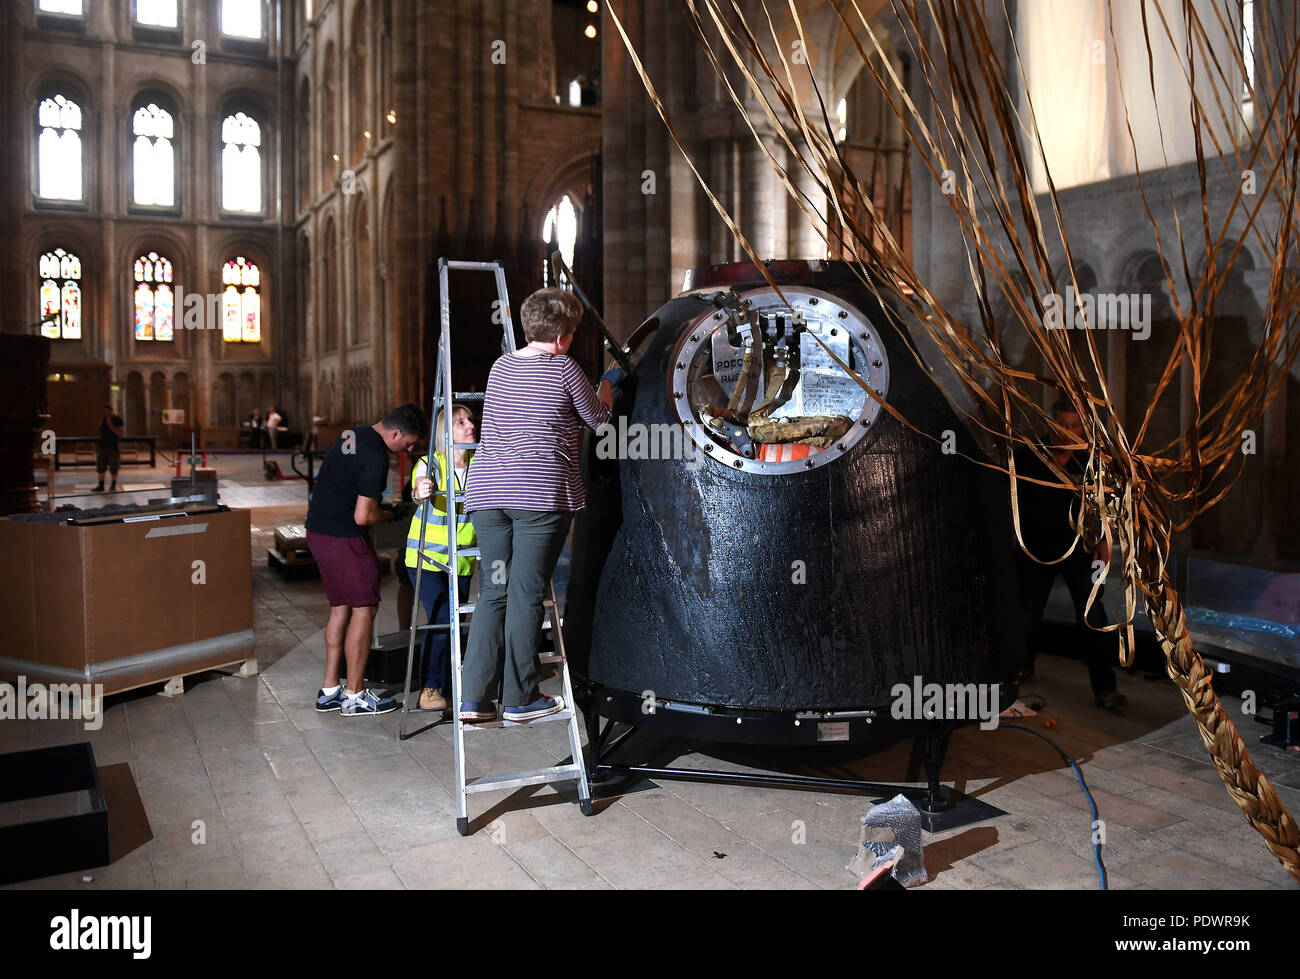 The Soyuz TMA-19M descent module, the spacecraft which brought astronaut Tim Peake back to Earth after his mission to the International Space Station, goes on display at Peterborough Cathedral. - Stock Image